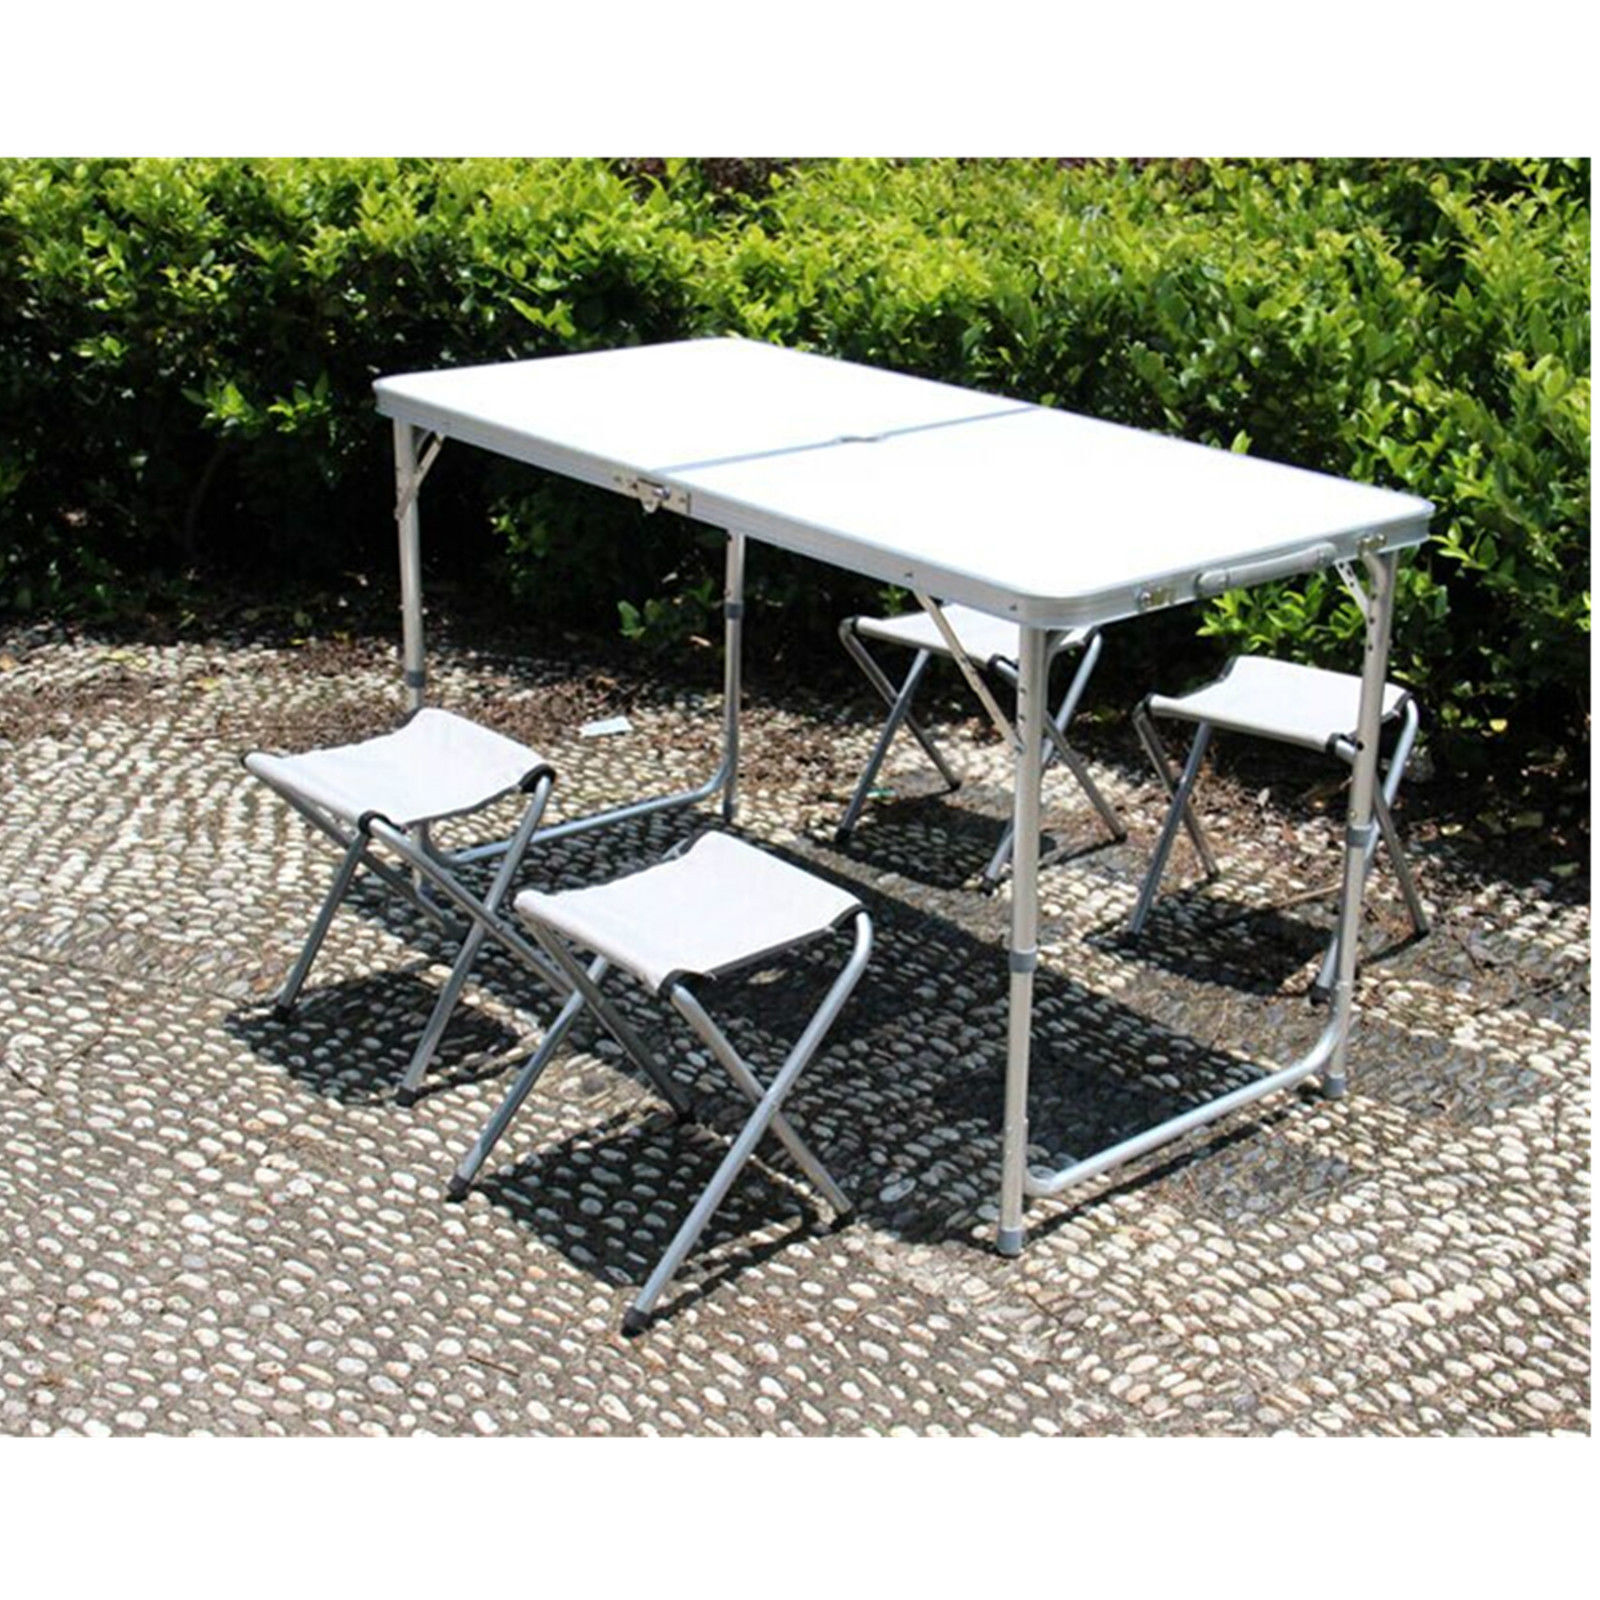 Outdoor foldable picnic camping garden folding table 4 for Epl table 99 00